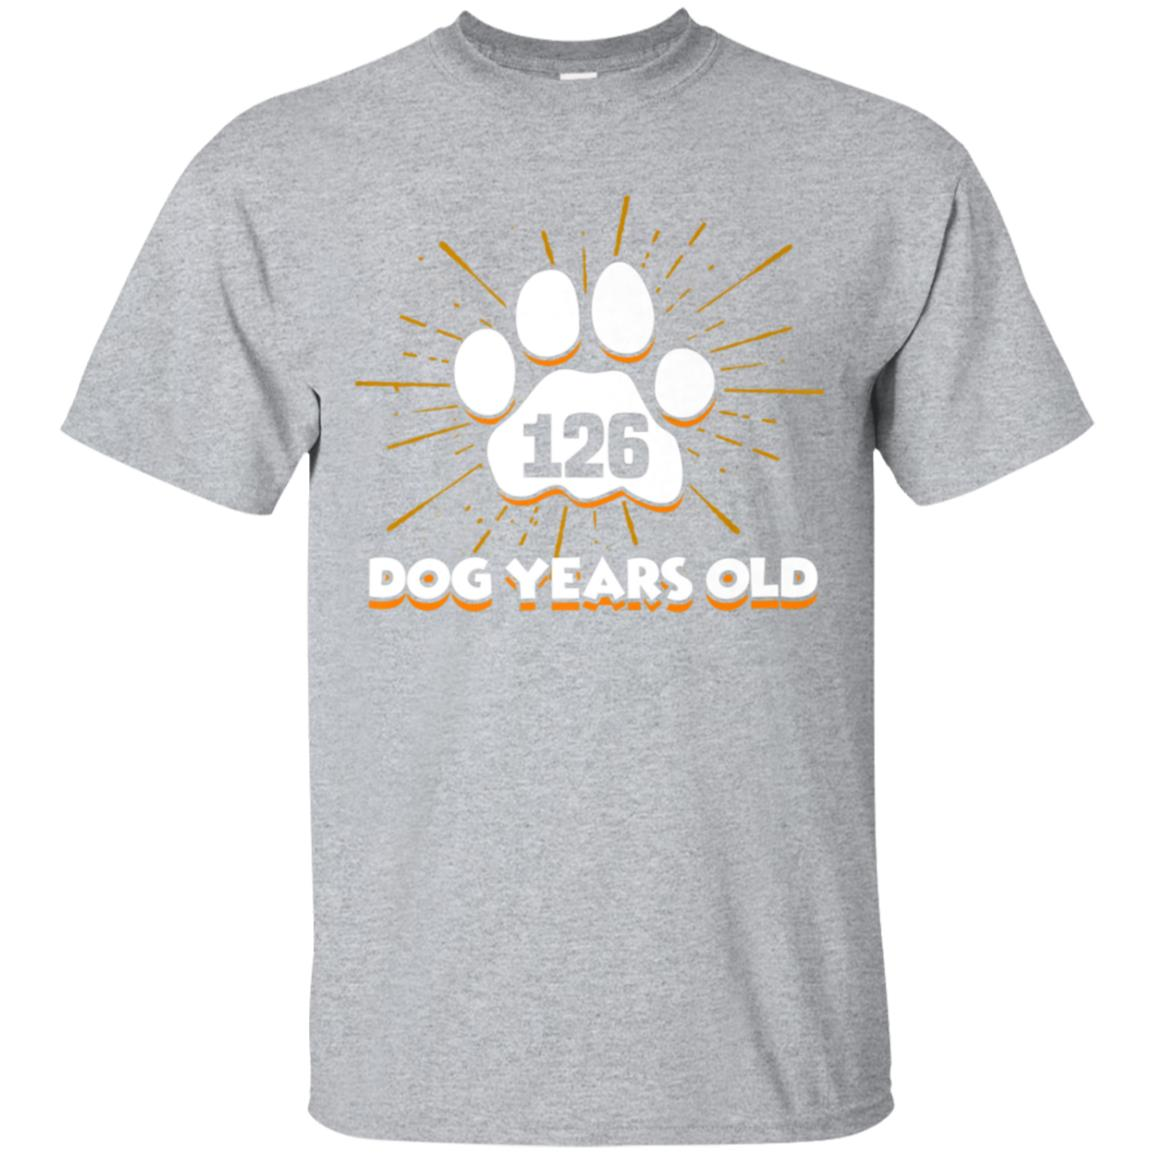 126 Dogs Years Old T-Shirt 18th Birthday Shirt For Dog Lover 99promocode